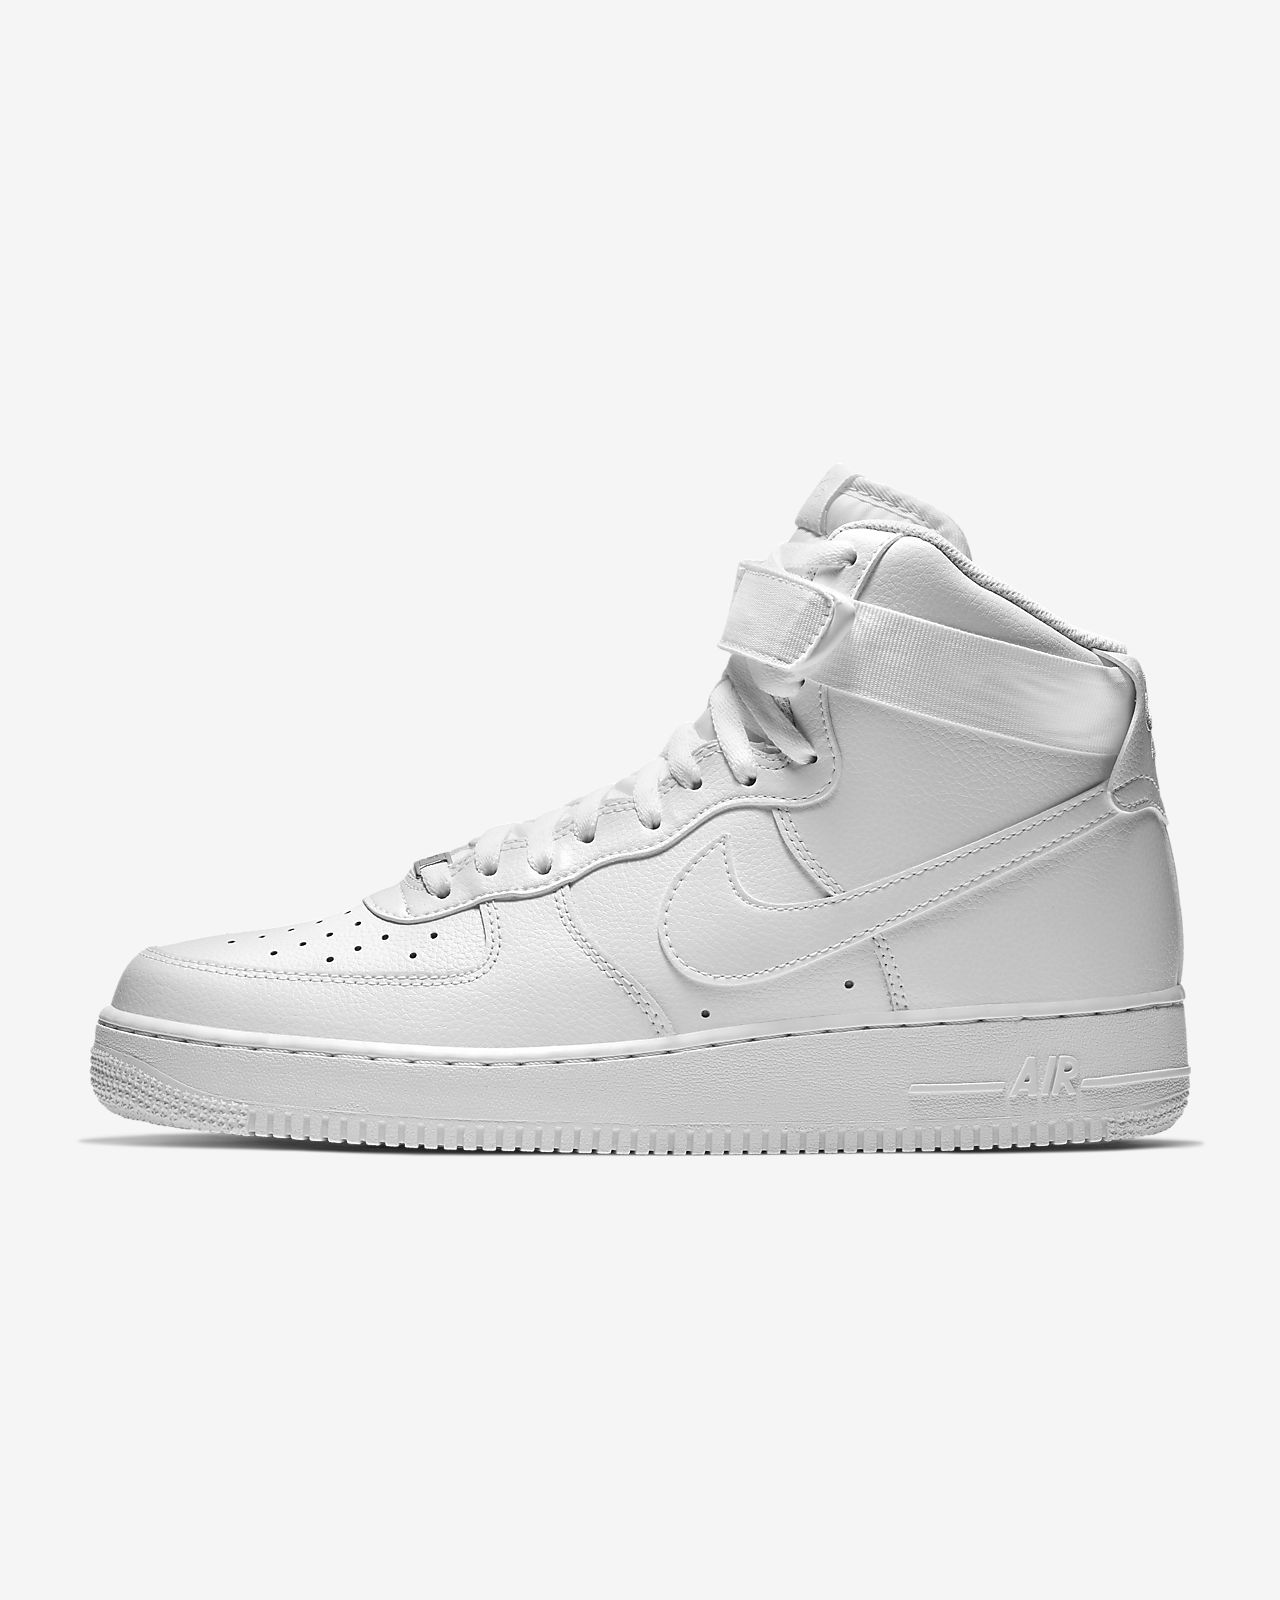 1199b28d8fb Nike Air Force 1 High 07 Men s Shoe. Nike.com